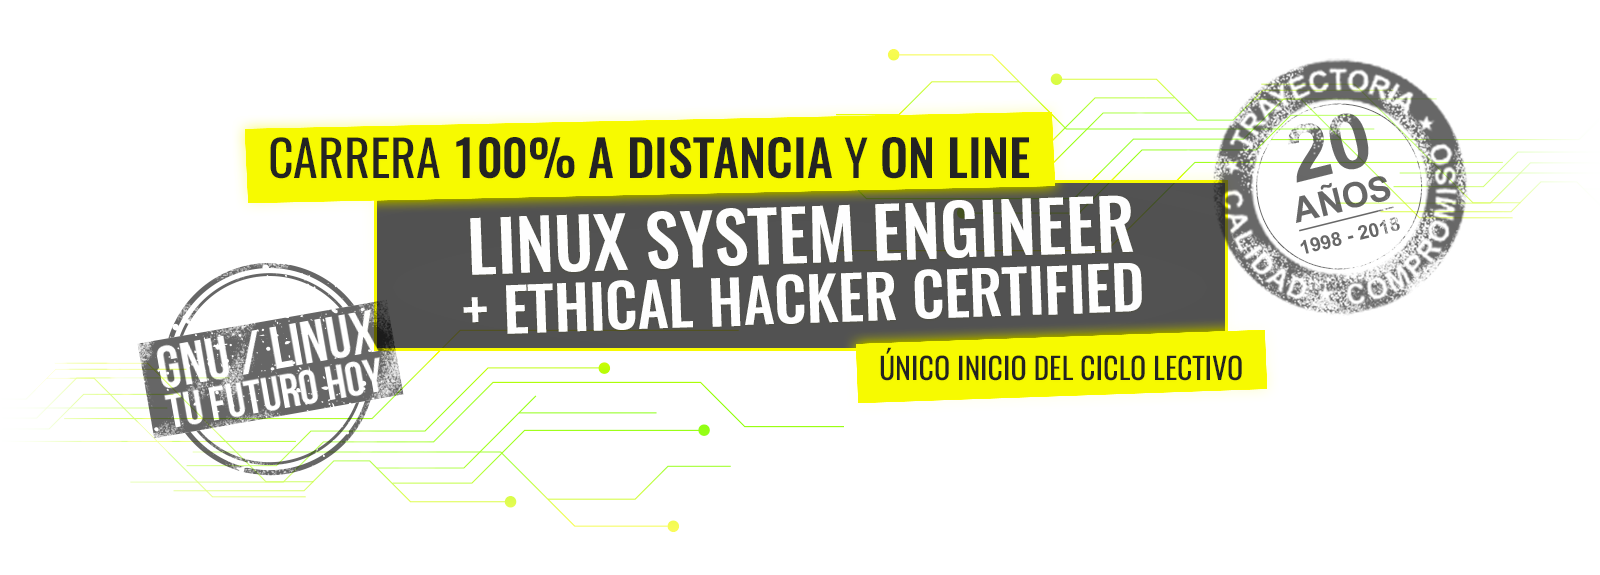 LINUX SYSTEM ENGINEER + ETHICAL HACKER CERTIFIED